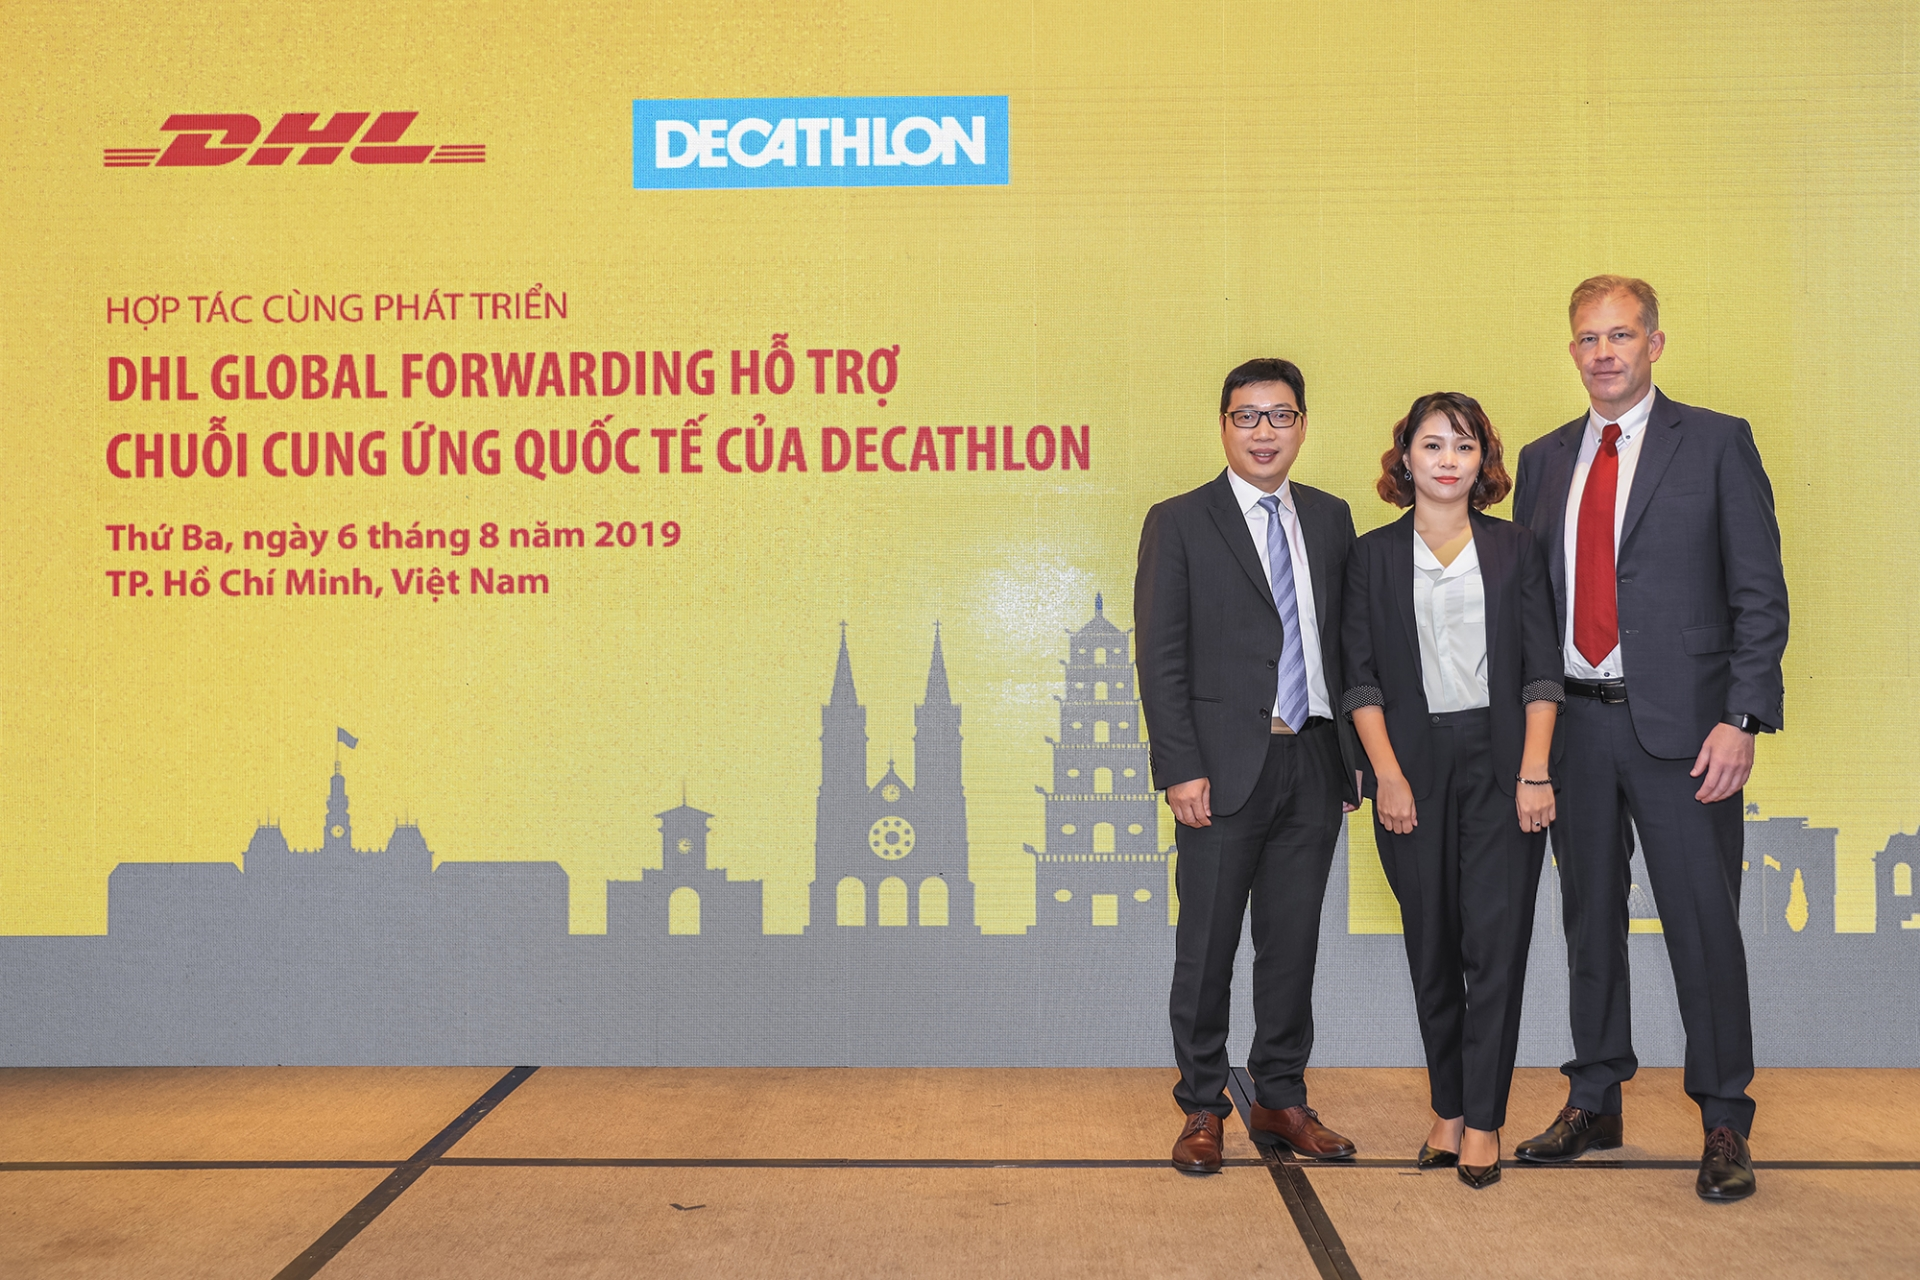 dhl global forwarding supports decathlons international supply chain